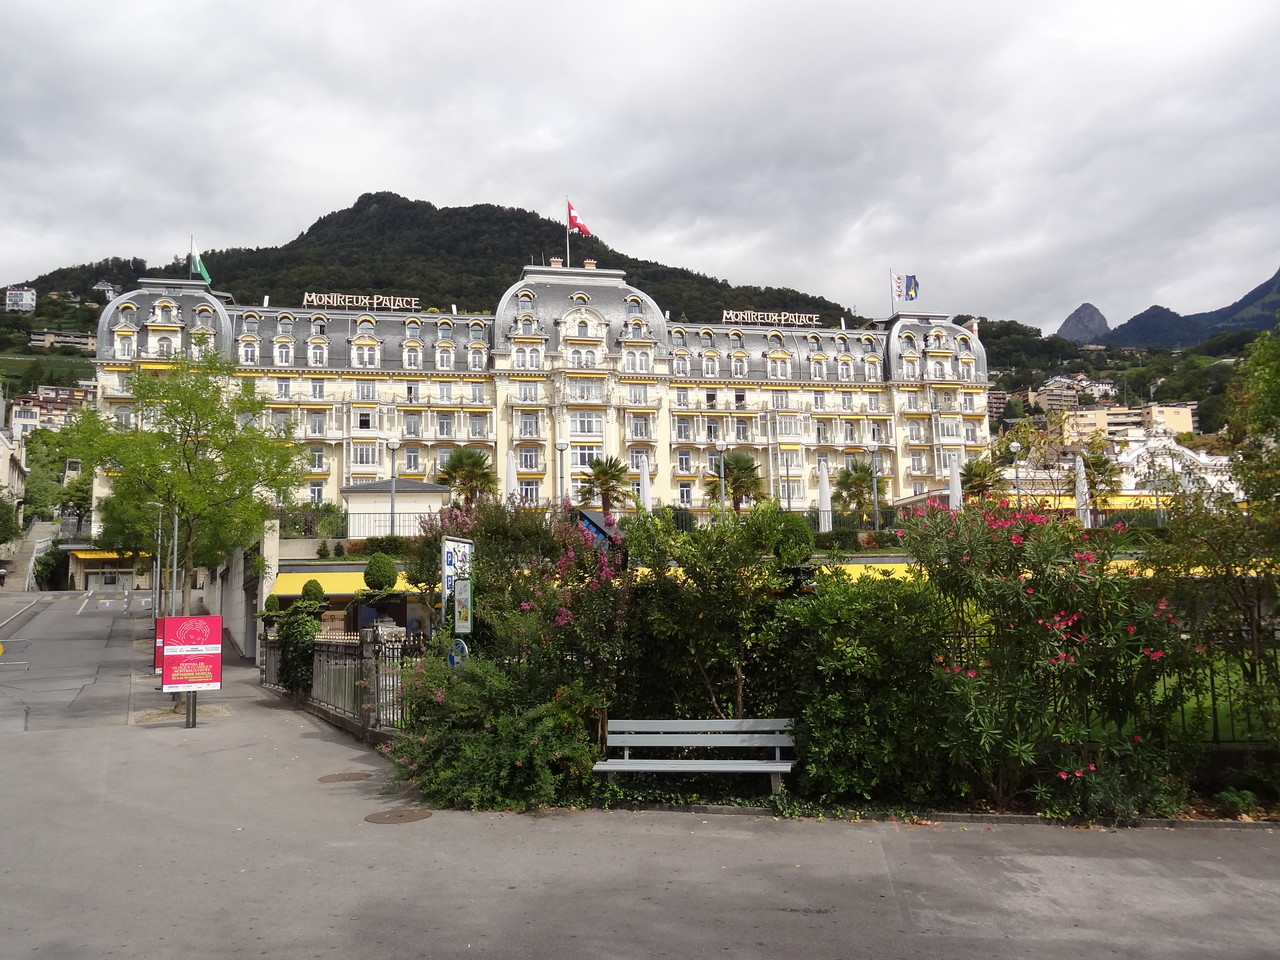 3. Halt in Montreux